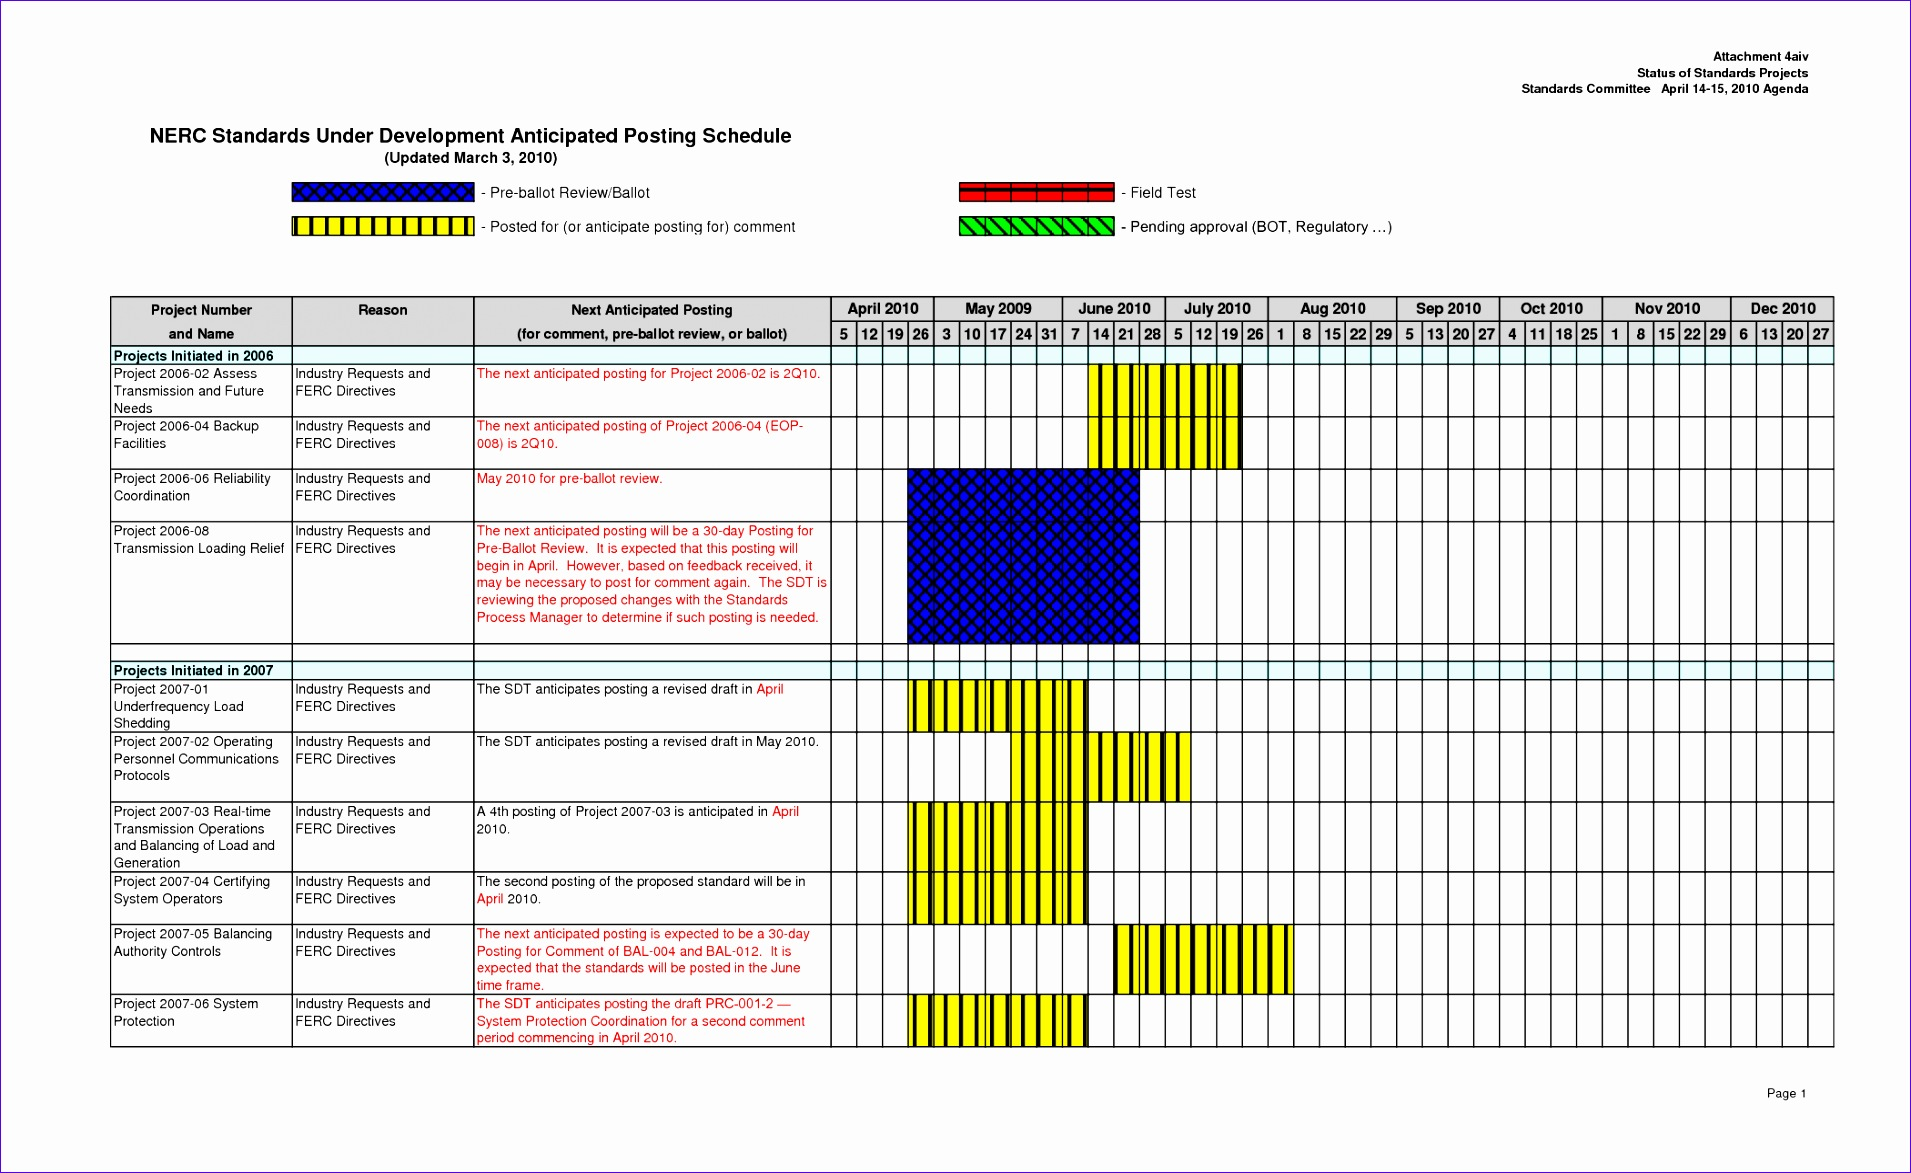 7 gantt chart in excel 2010 template exceltemplates exceltemplates project calendar excel excel project management template 1ltocebz nvjuhfo Choice Image